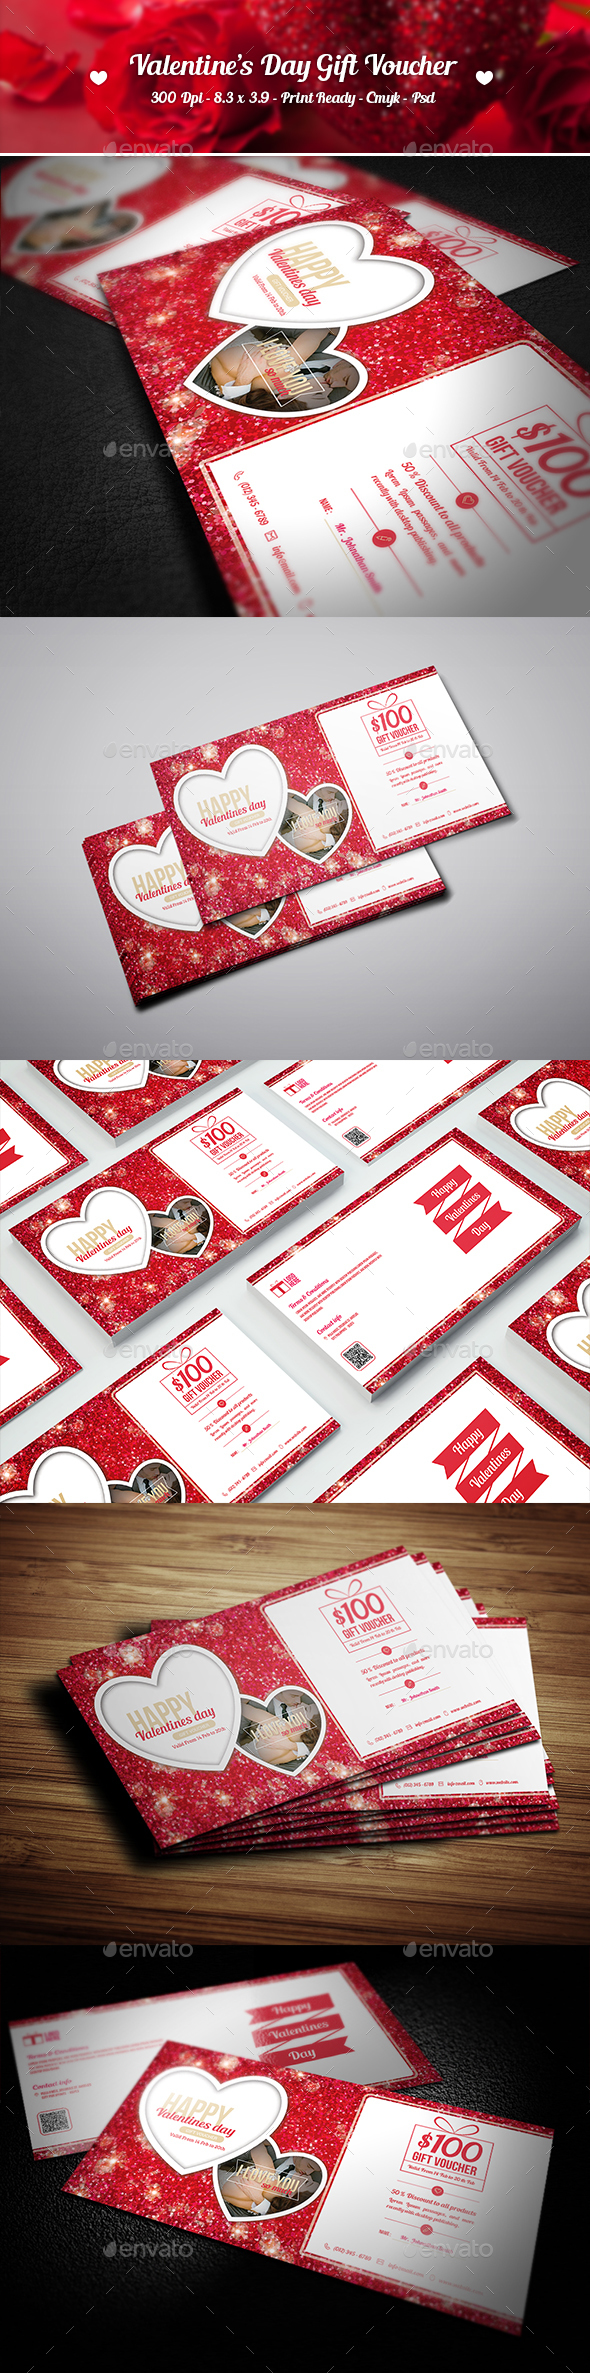 Creative Valentine's Day Gift Voucher  - Cards & Invites Print Templates